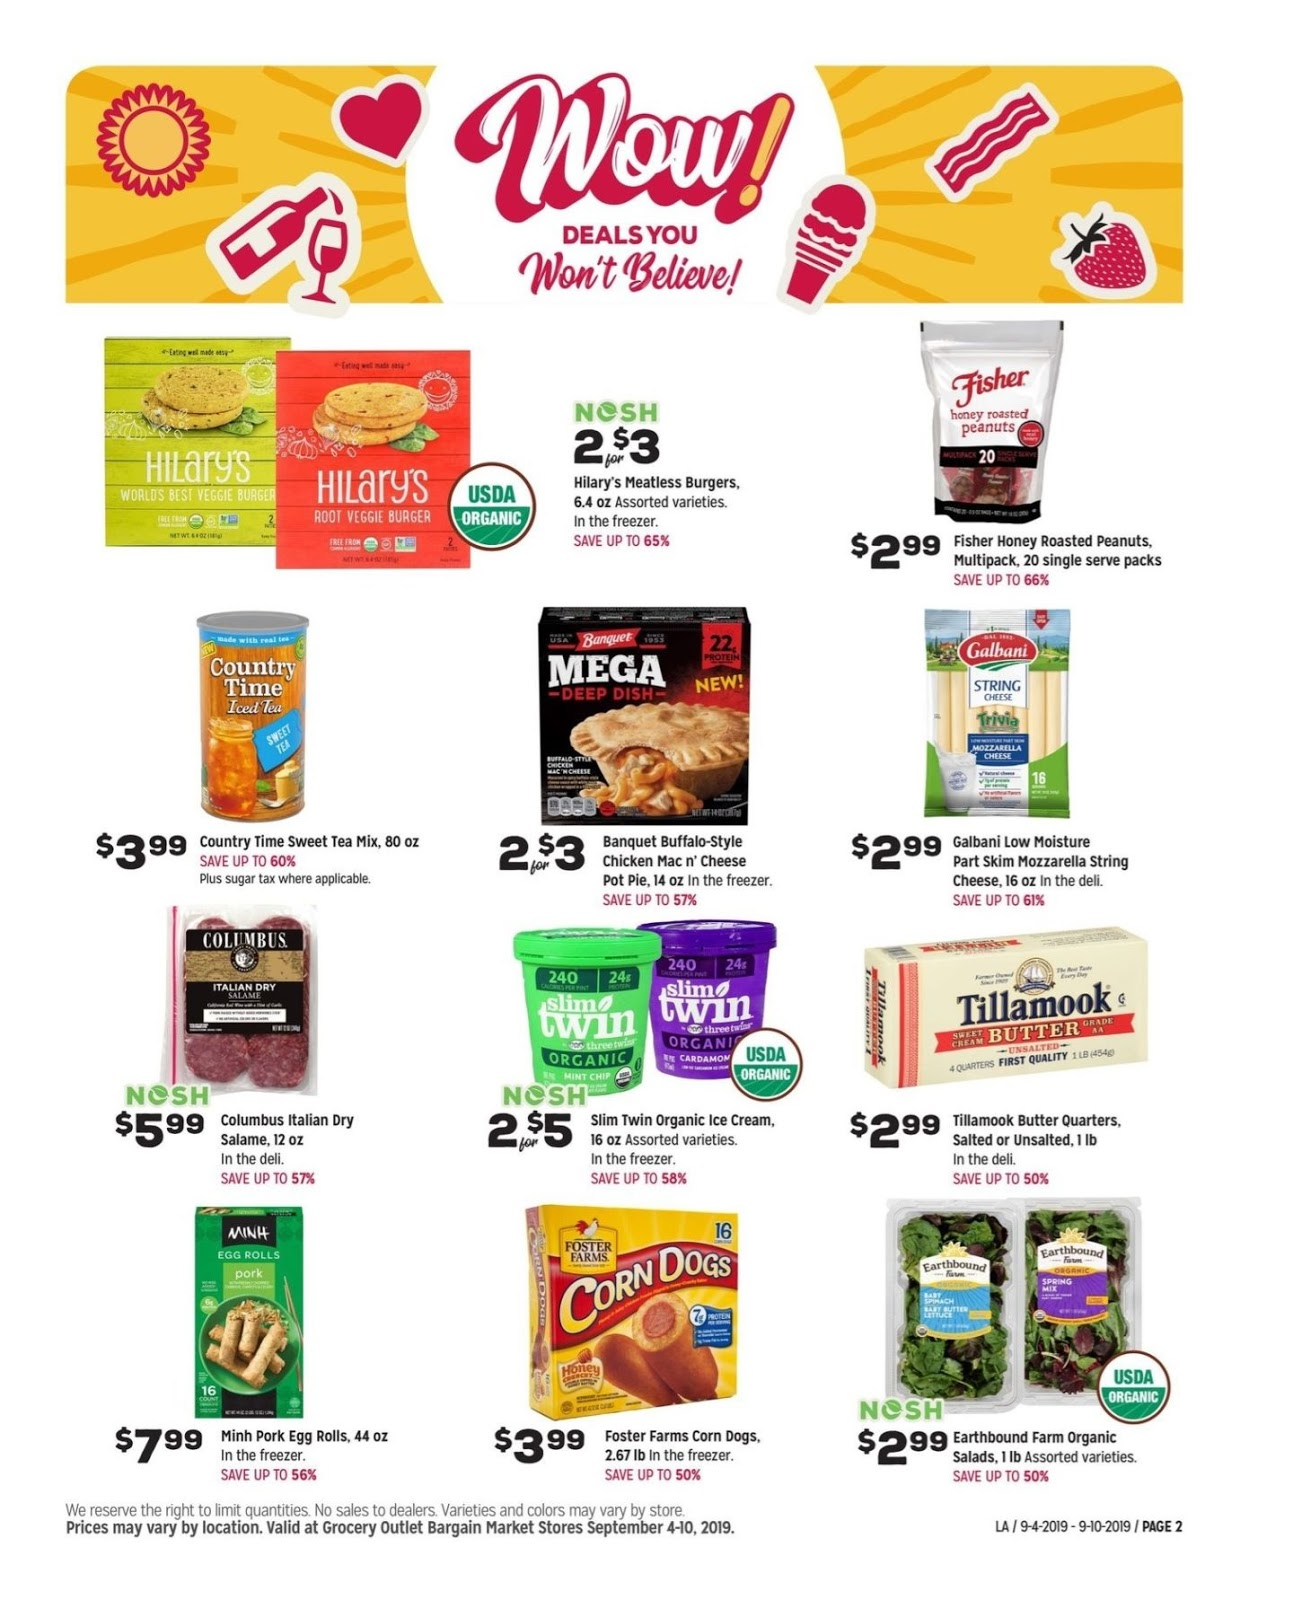 Grocery Outlet Weekly Specials September 4 - 10, 2019